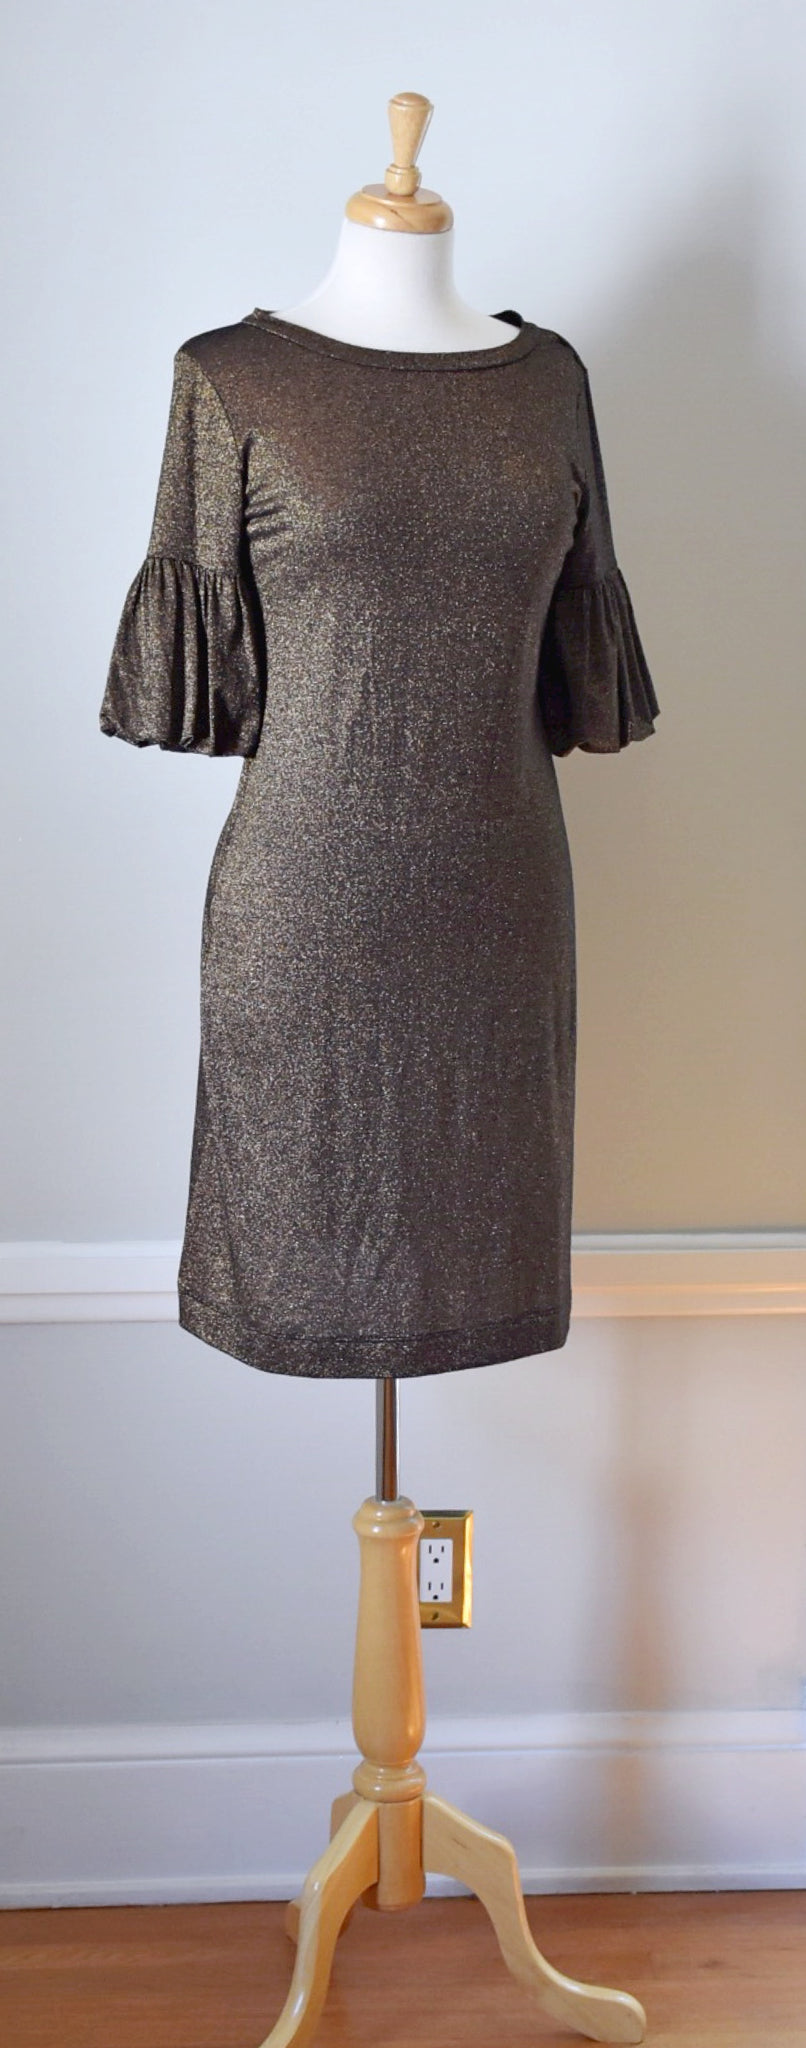 90s Lurex Sheath Dress